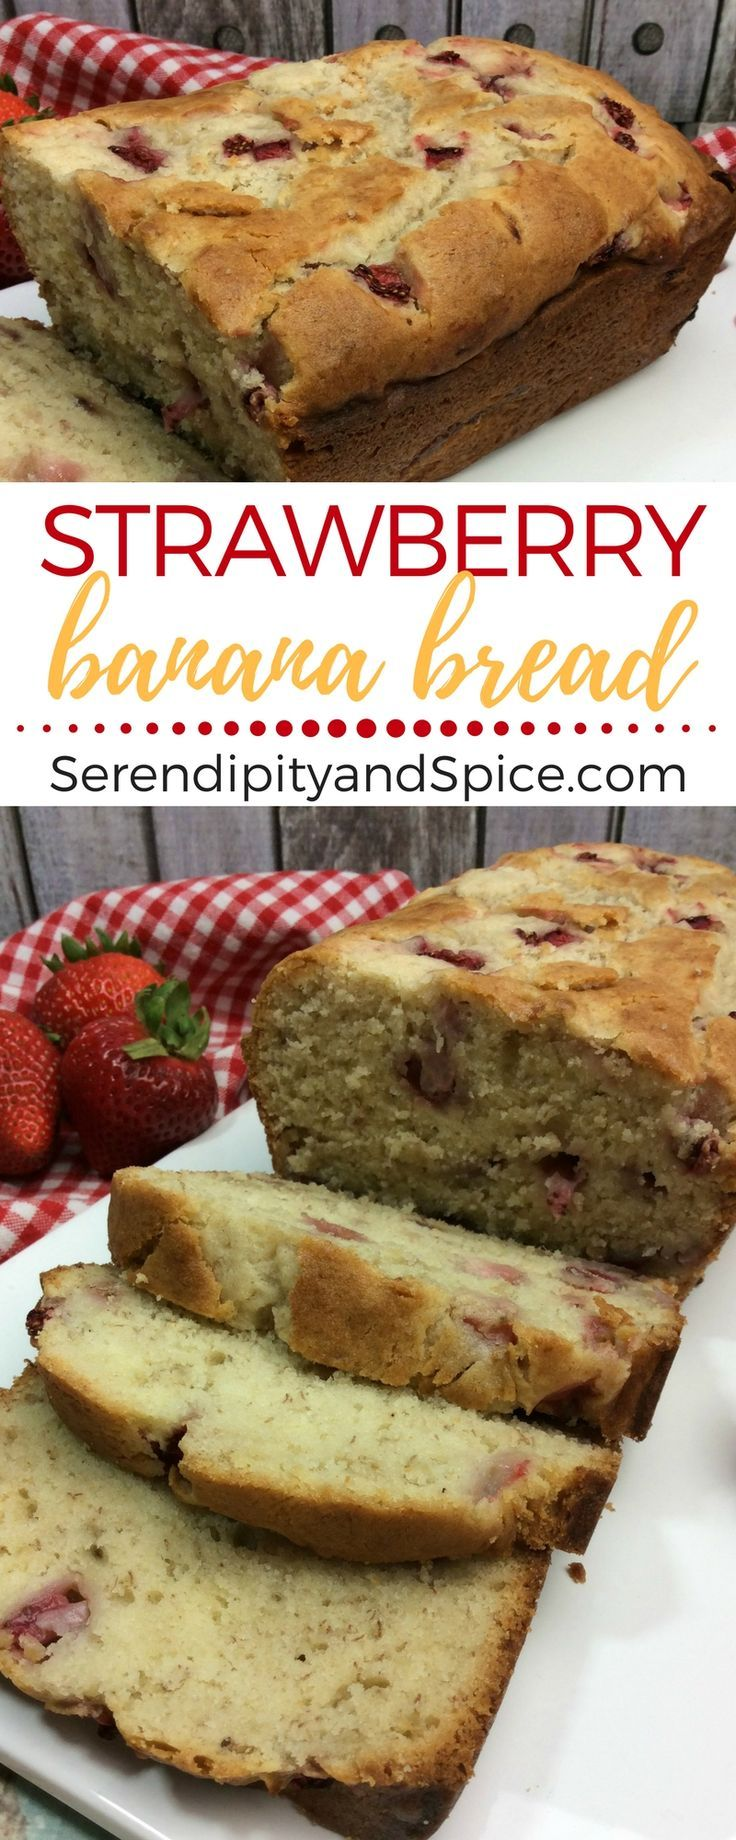 The sweet taste of banana bread with the tart addition of strawberries makes this Strawberry Banana Bread an easy recipe perfect for breakfast or dessert!#banana #strawberry #bananabread #baking #recipe #breakfast #snack